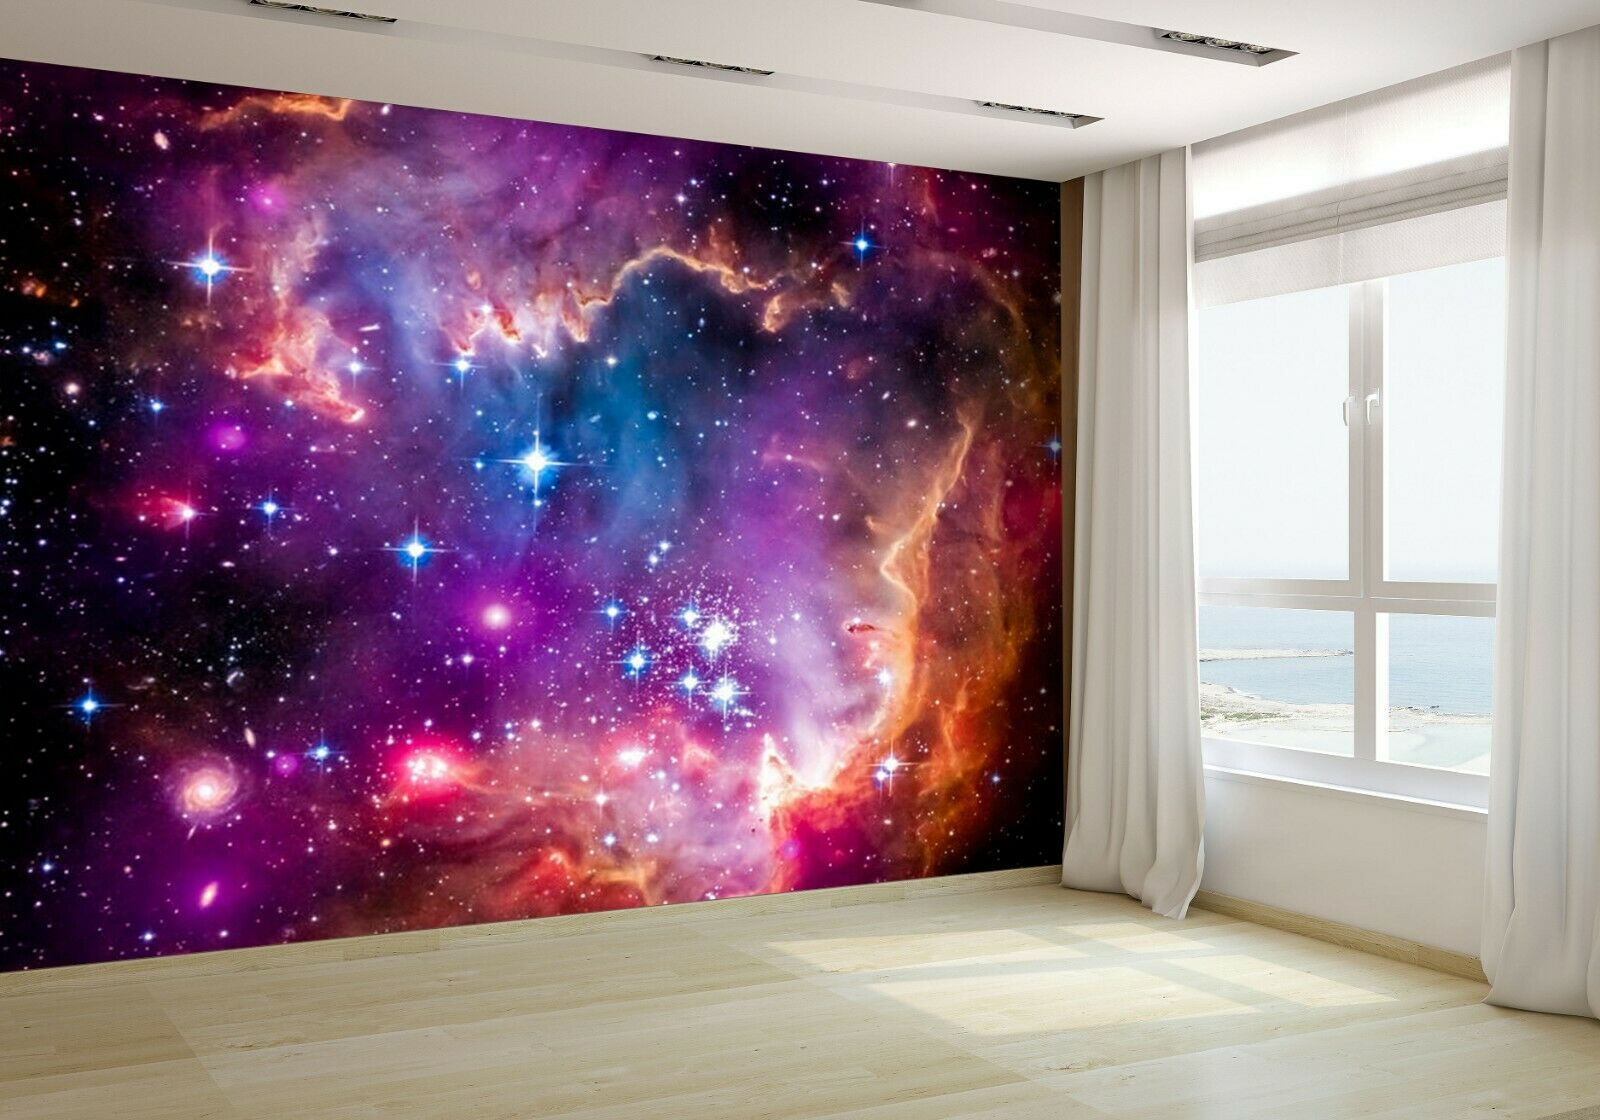 Galaxy and a Galactic Neighbor Wallpaper Mural Photo 27549273 premium paper